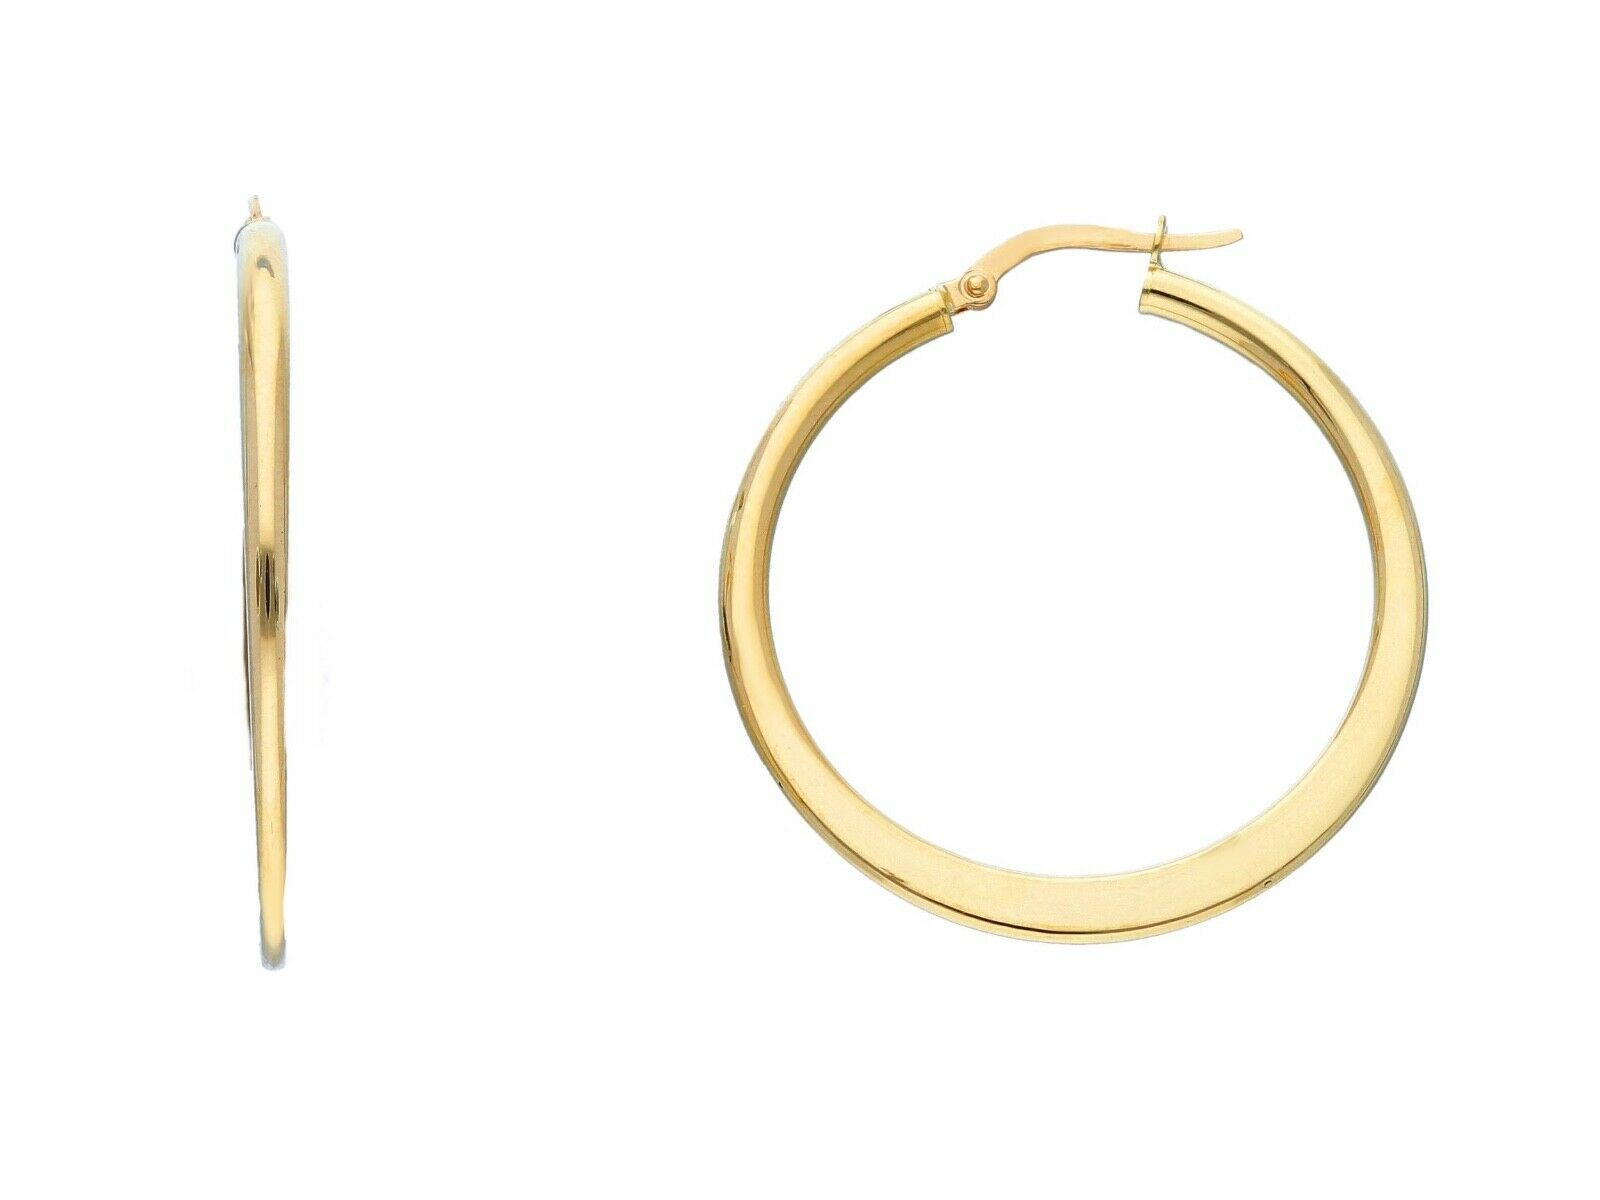 18K YELLOW GOLD ROUND CIRCLE EARRINGS DIAMETER 30 MM GLOSSY BRIGHT MADE IN ITALY